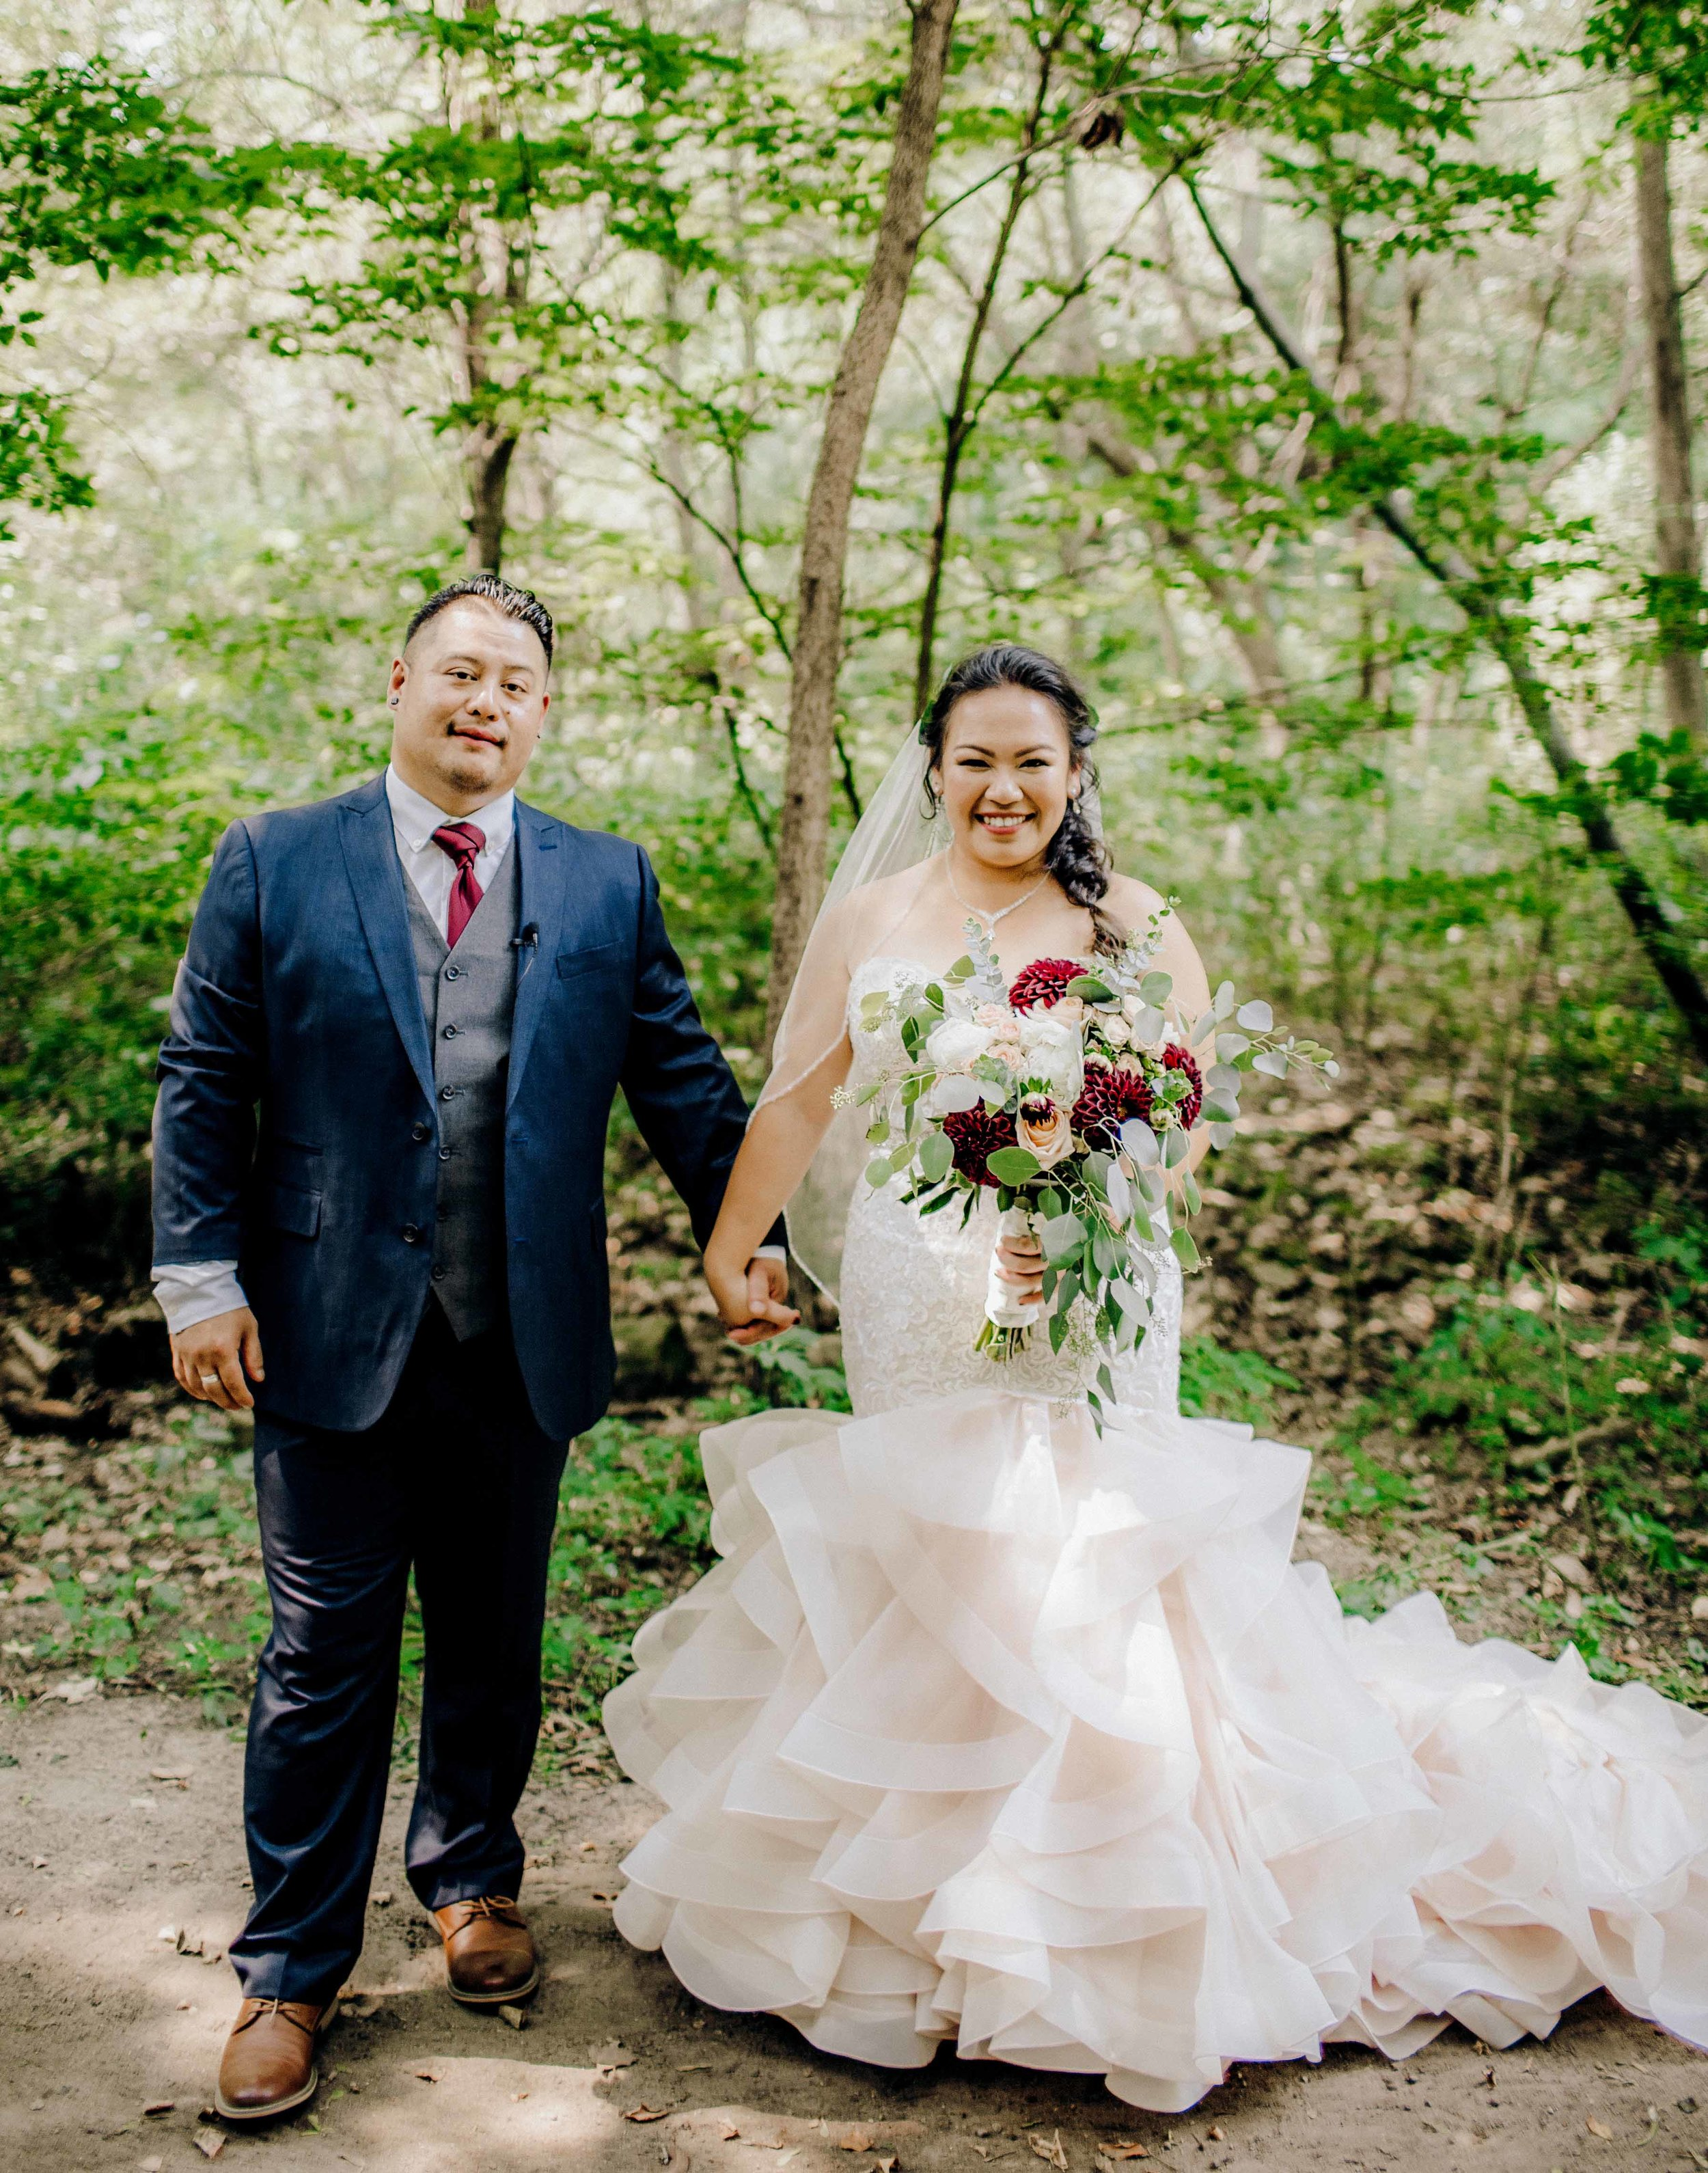 Becky + Kong, Part II, Bride, Groom, and Party-92.jpg